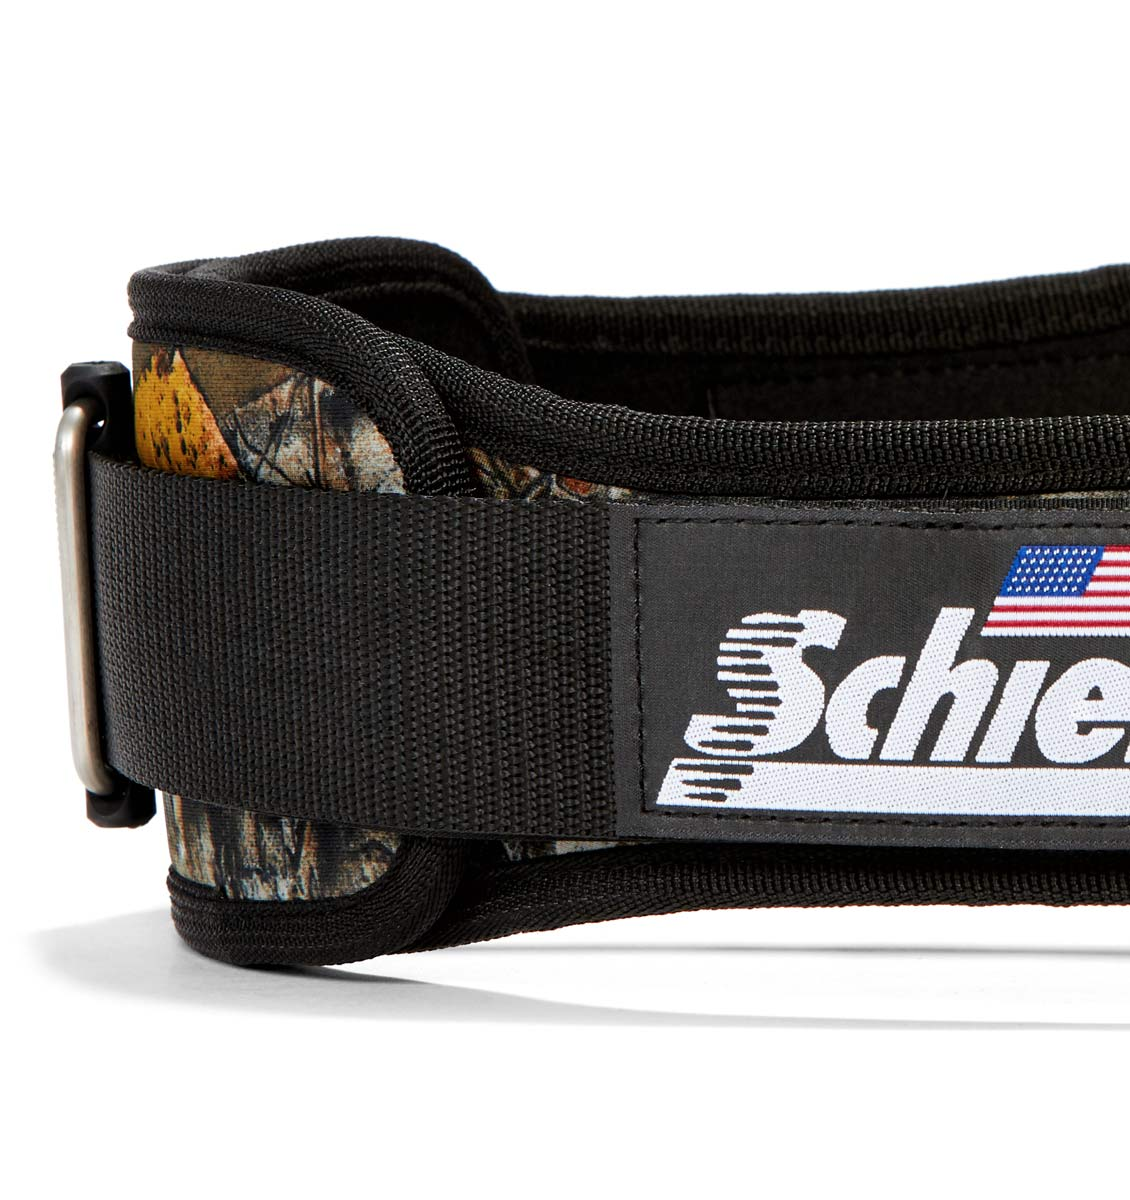 4006OB Schiek Contour Weight Lifting Belt Camo Side Close Up